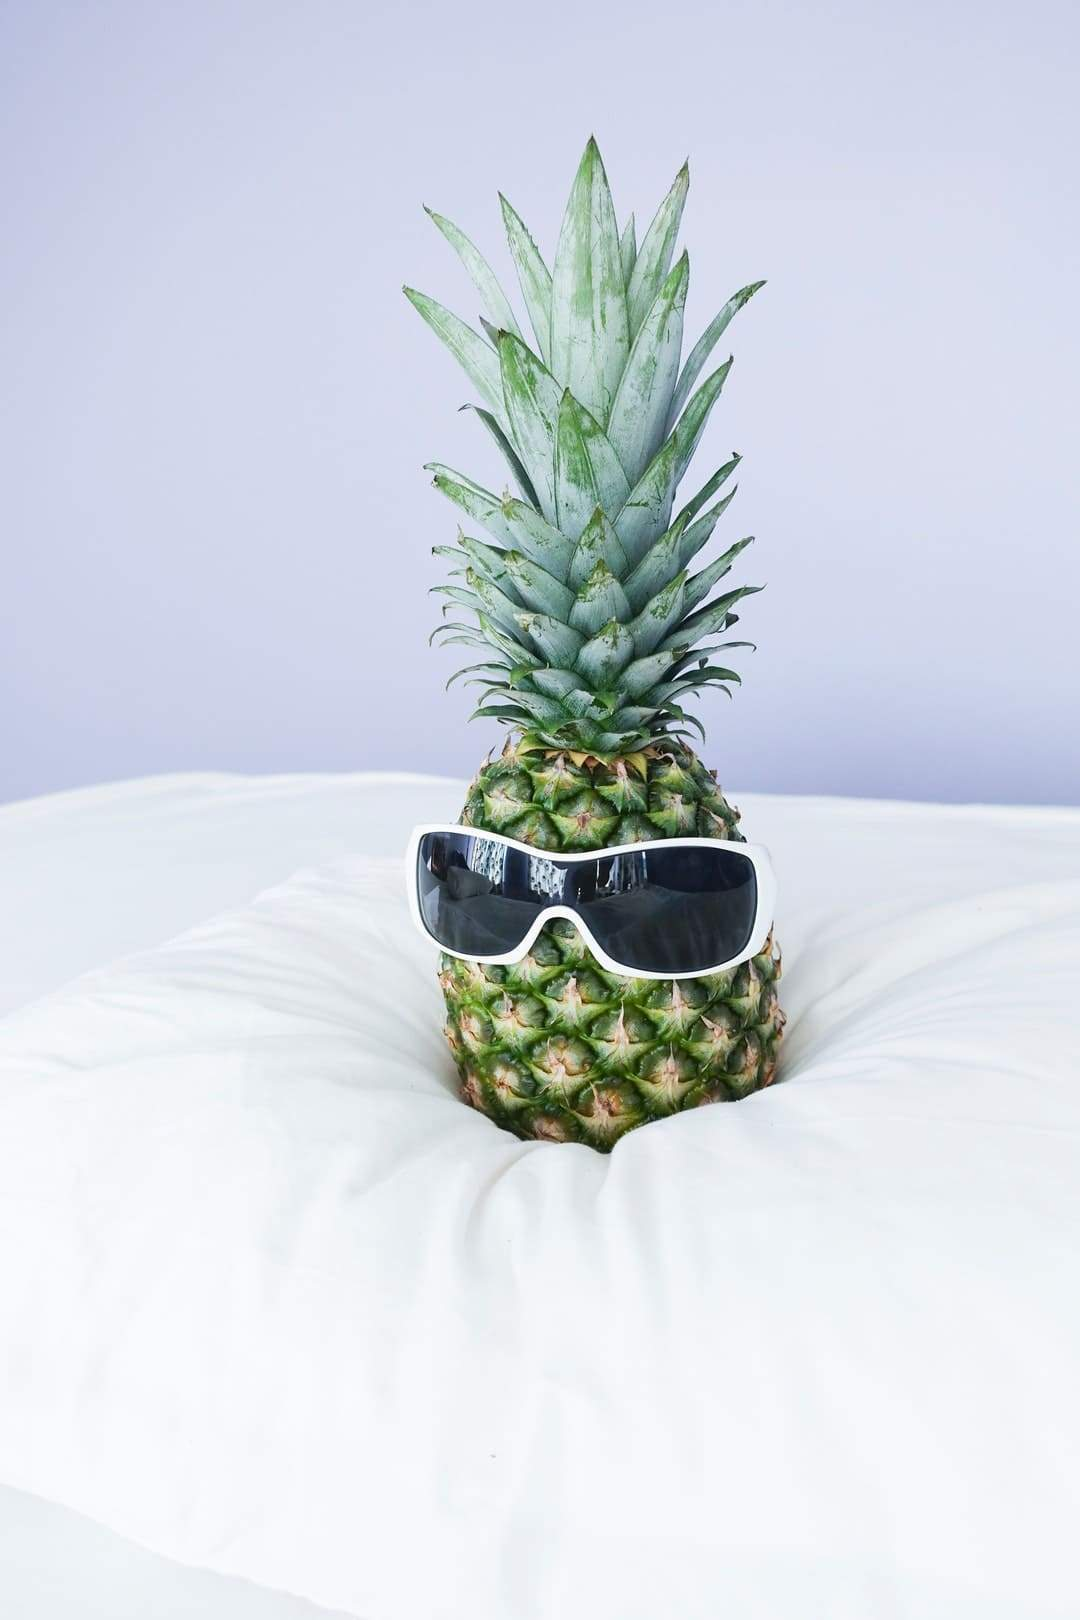 7 Reasons to Wear Pineapple Prints to Your Next EDM Festival